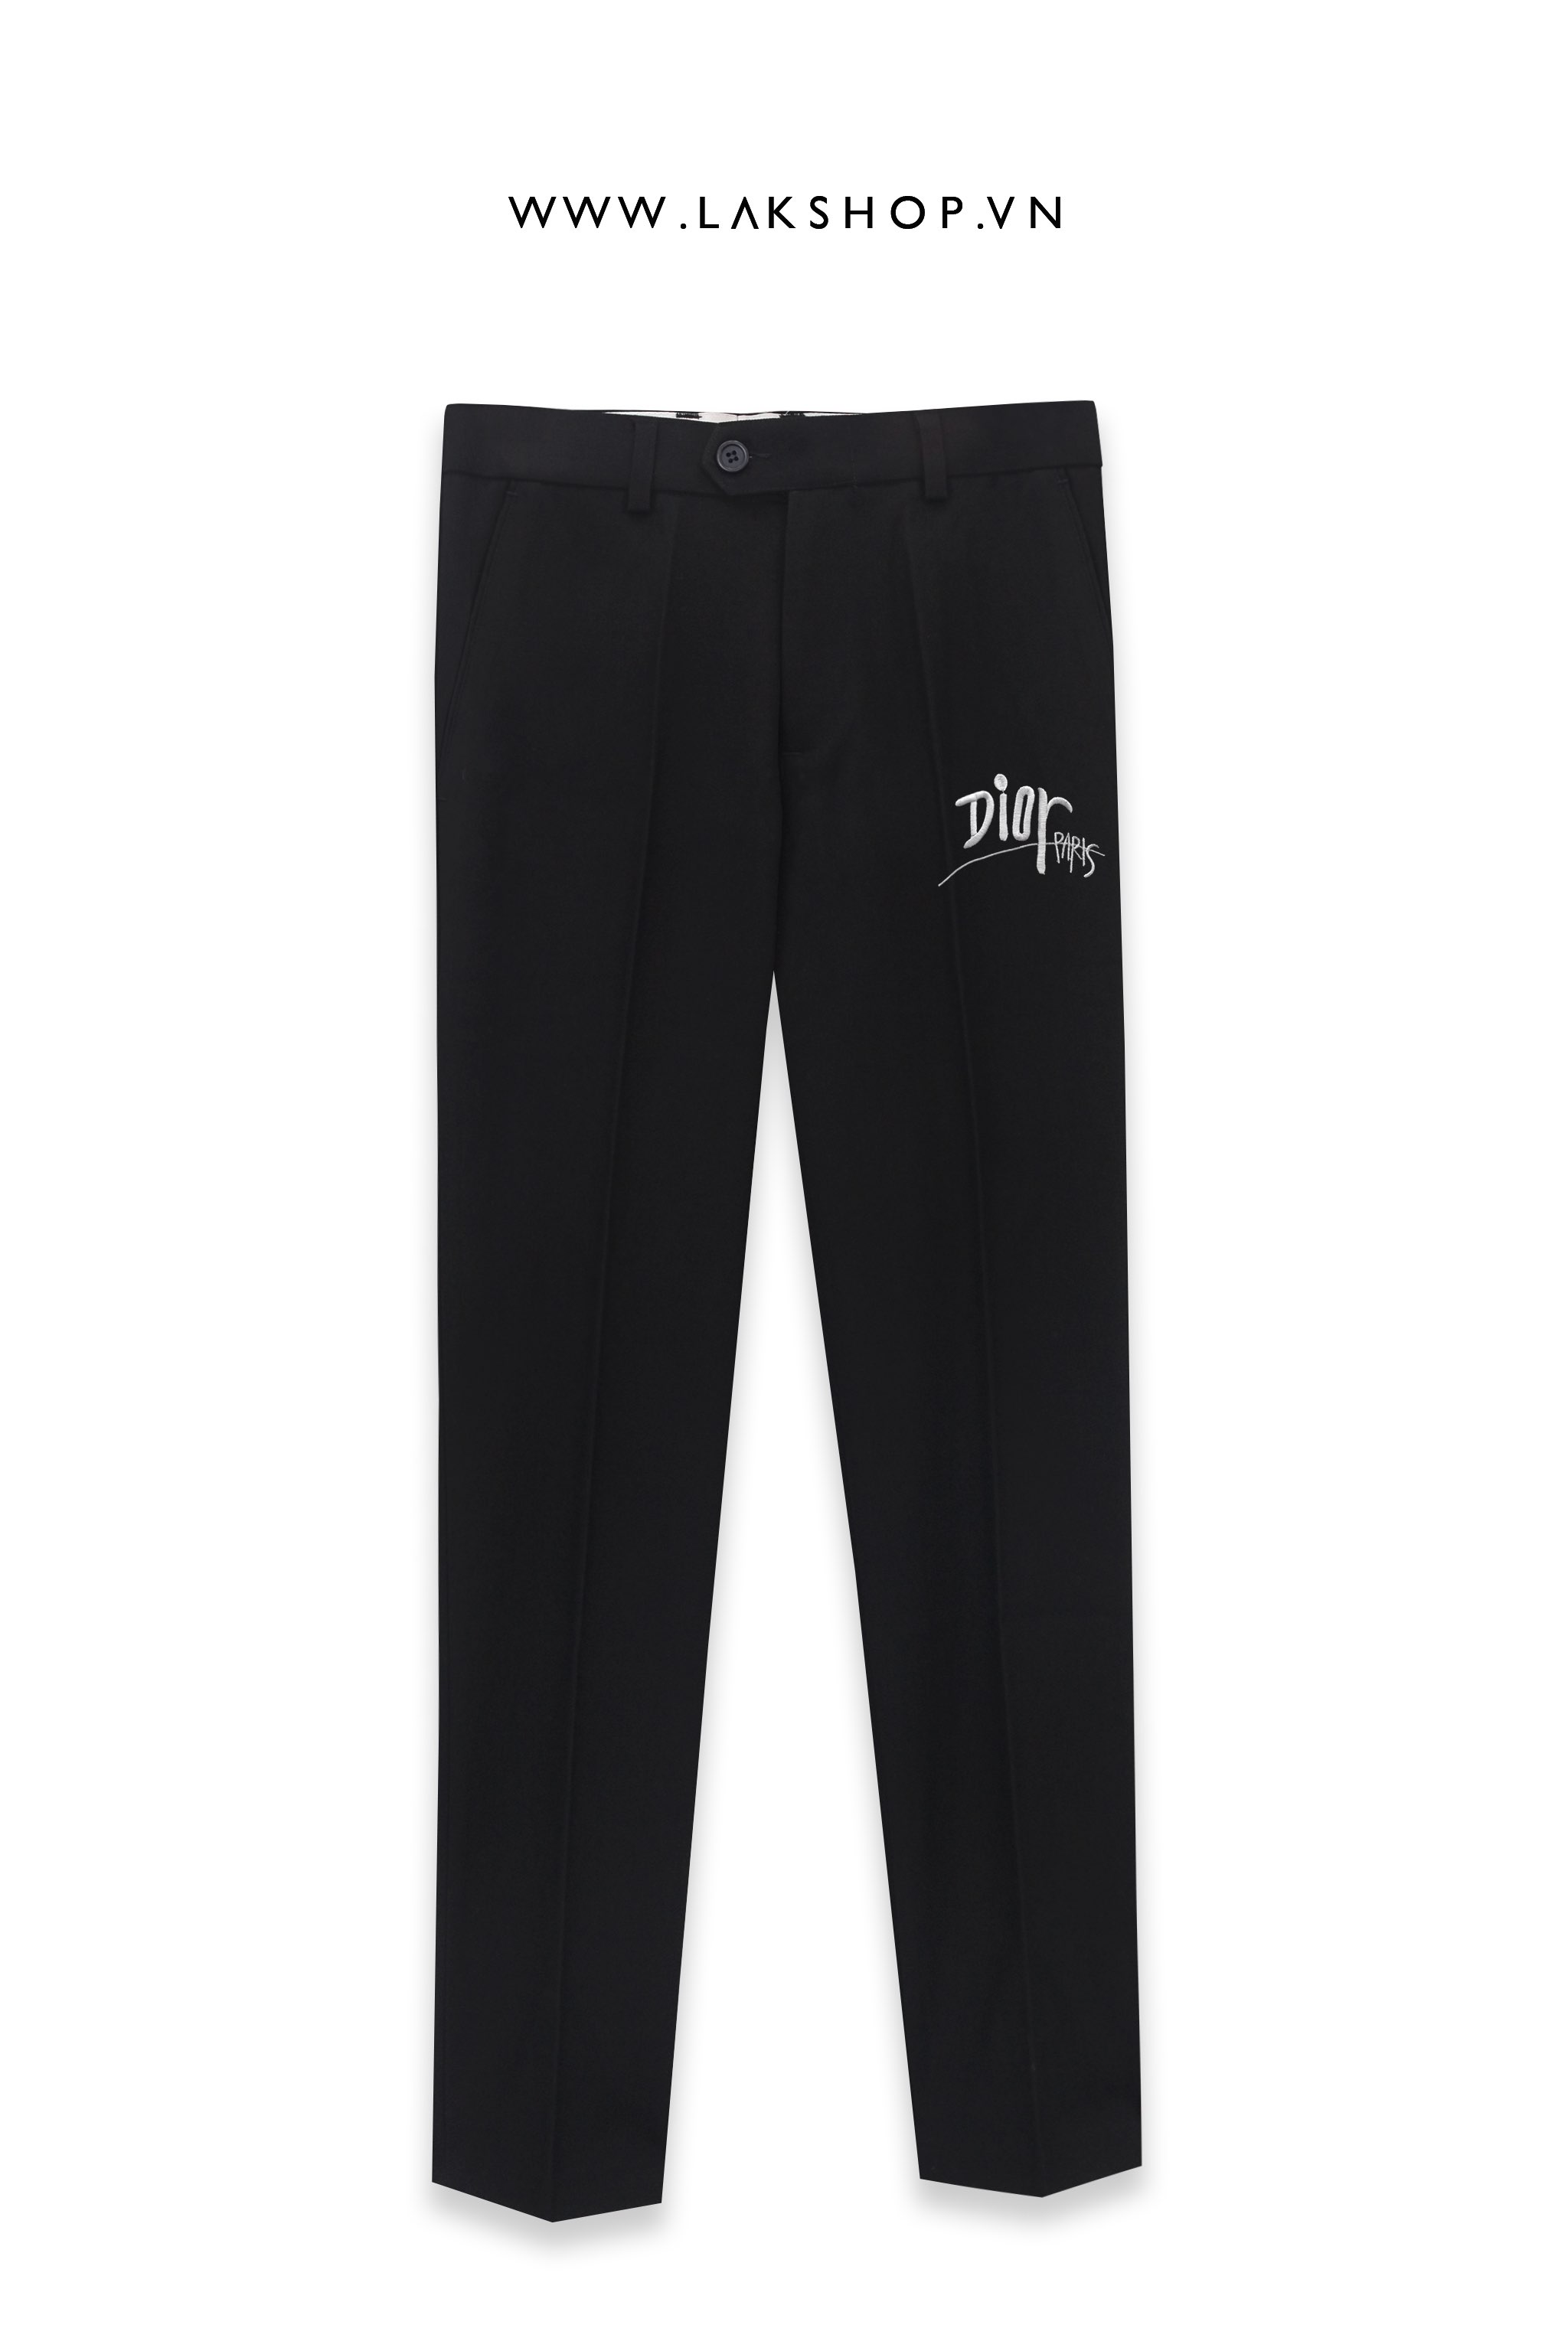 Dior and Shawn Logo Trousers